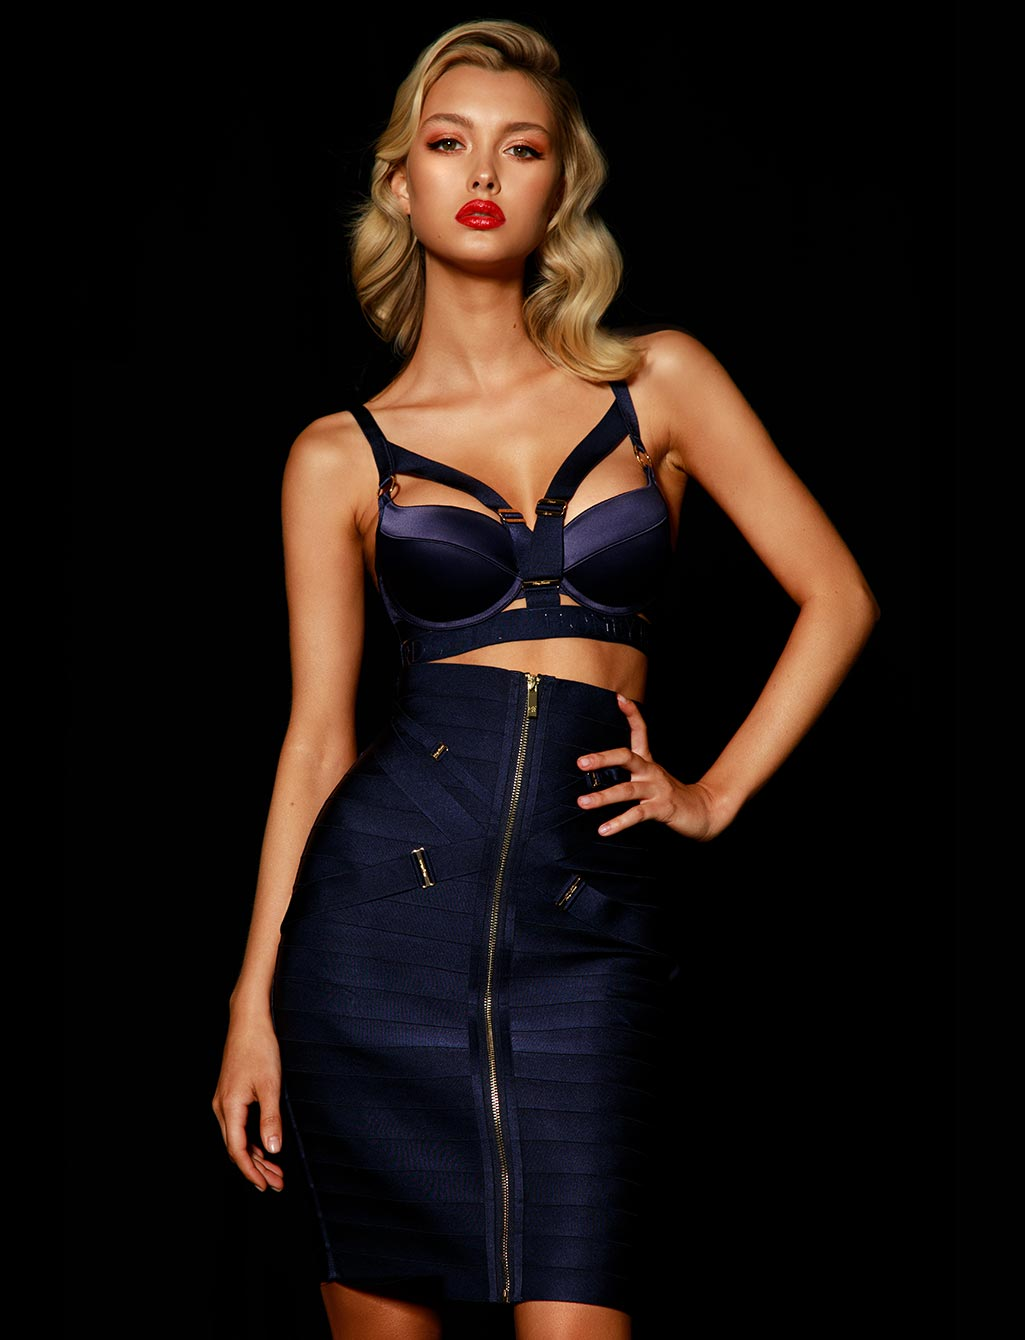 Elvis Navy Skirt Lingerie Set - Shop  Lingerie | Honey Birdette